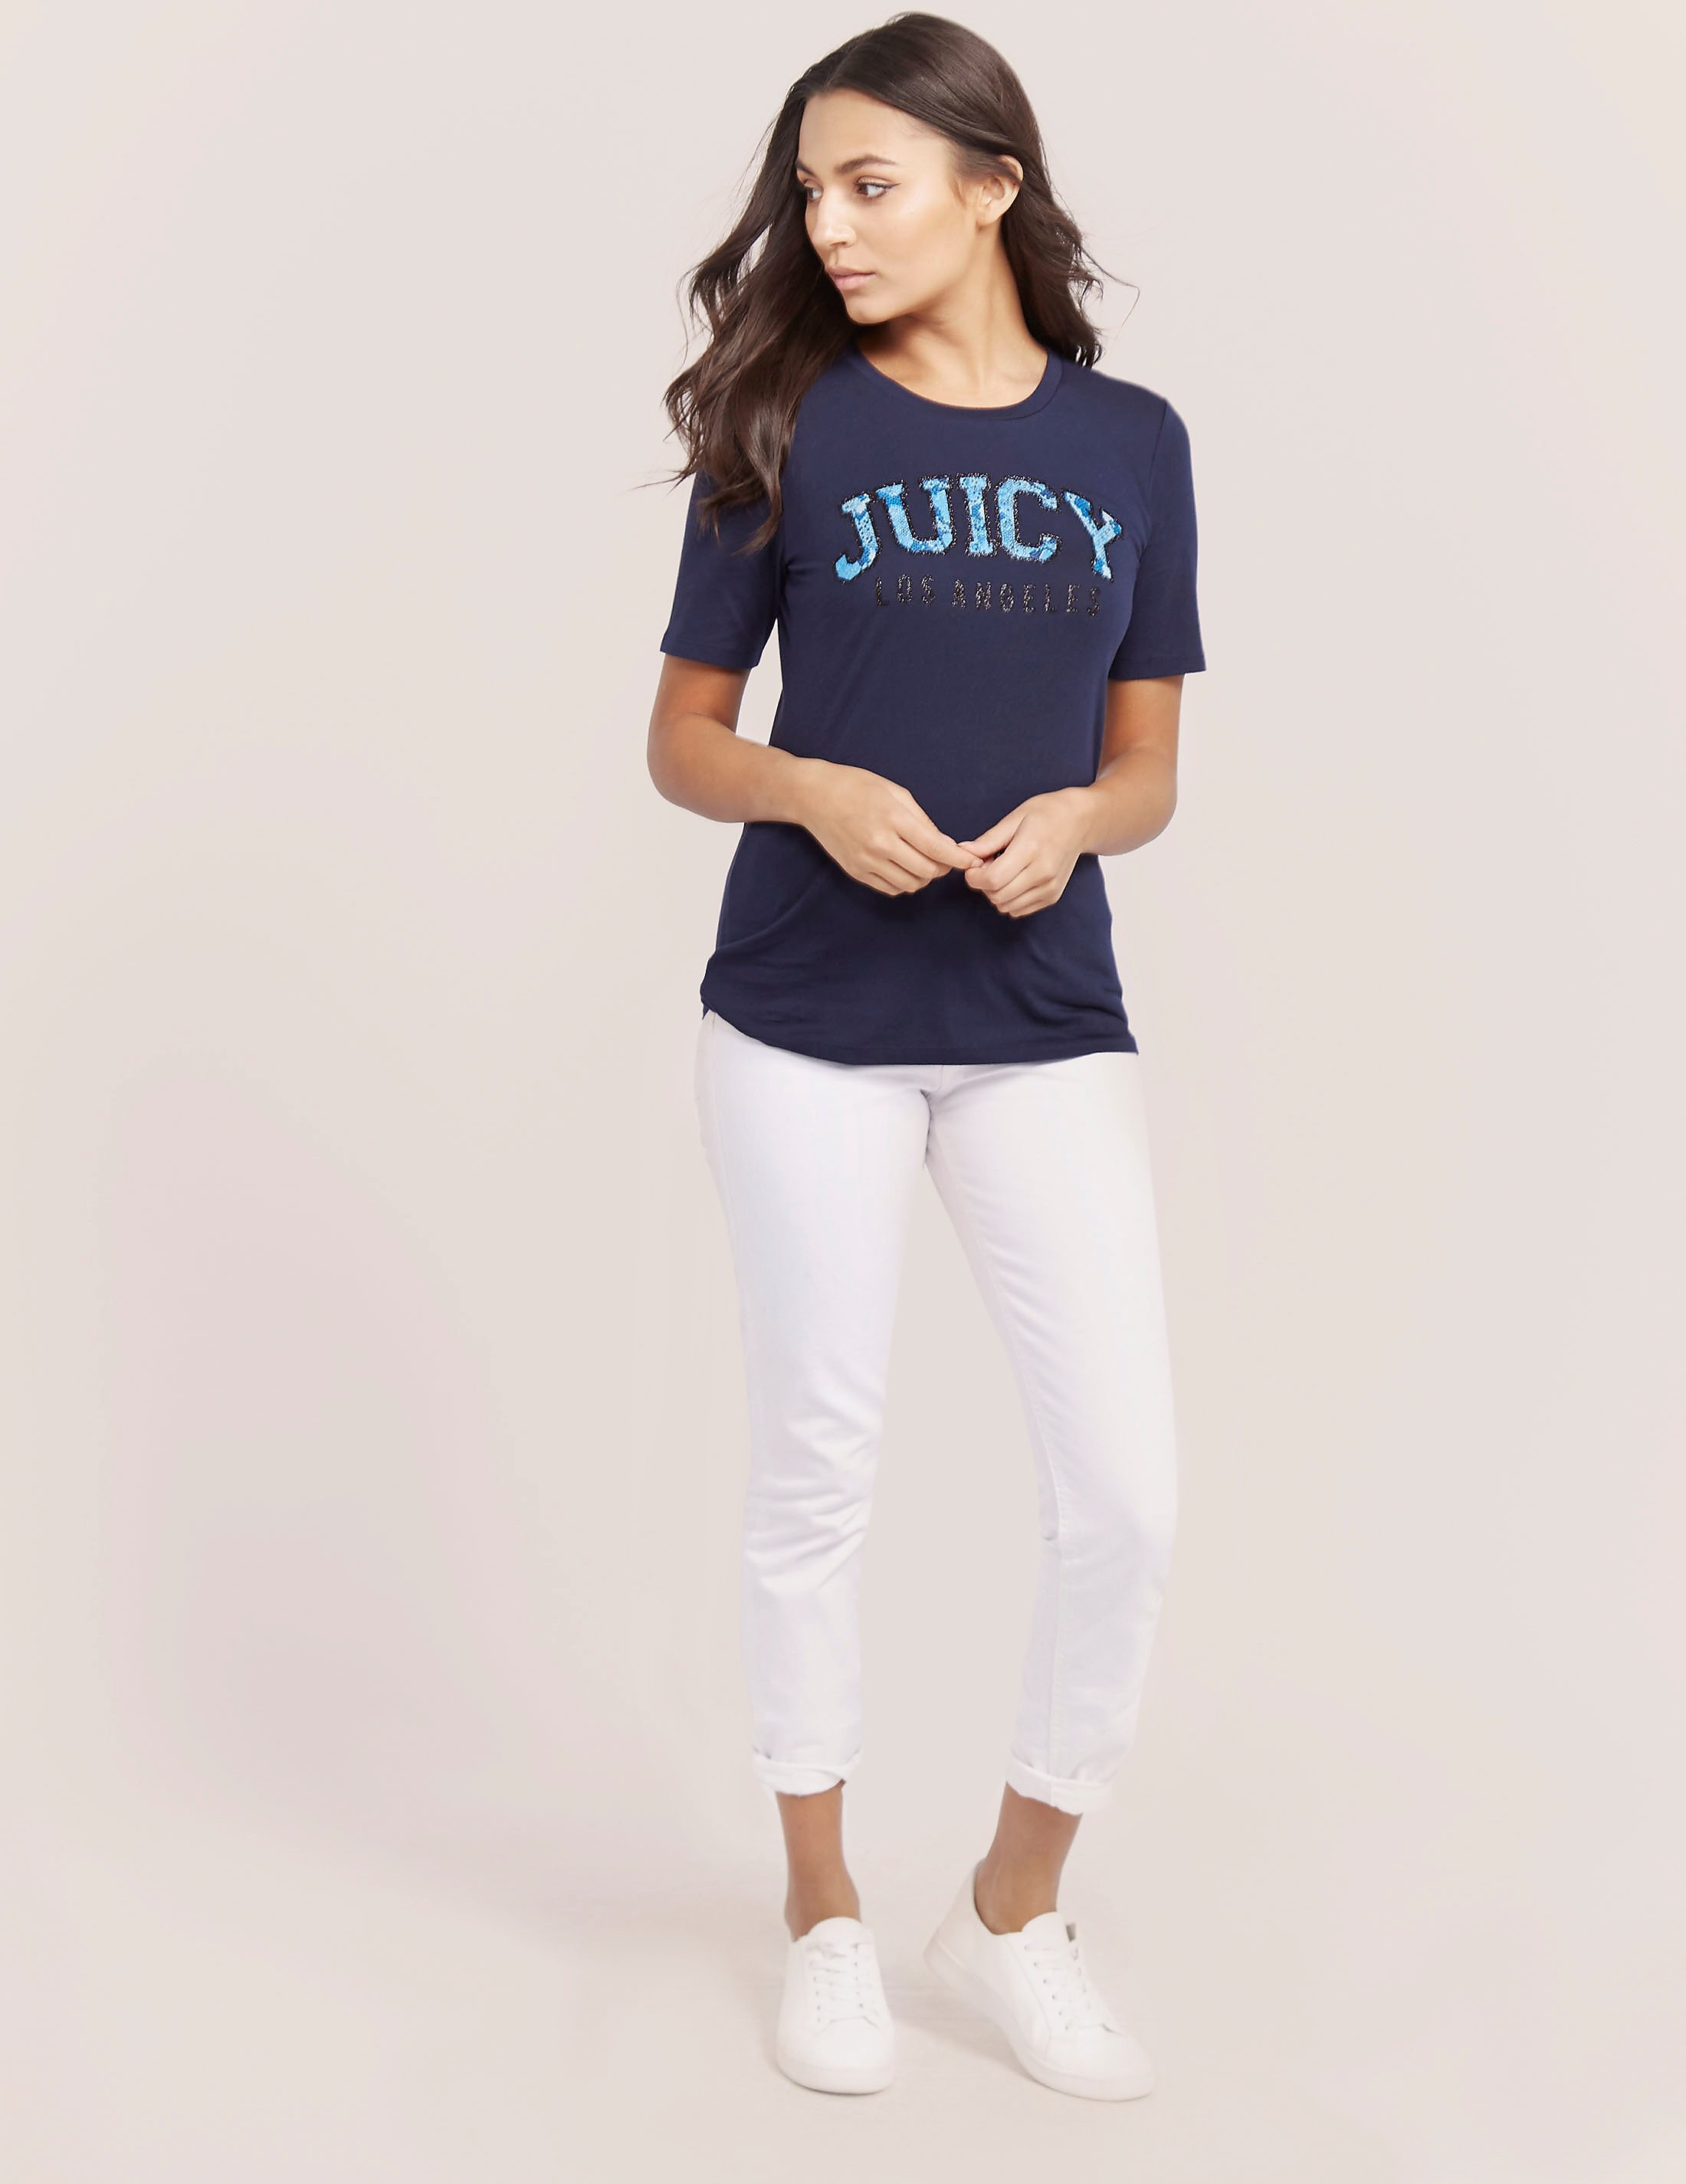 Juicy Couture Python T-Shirt